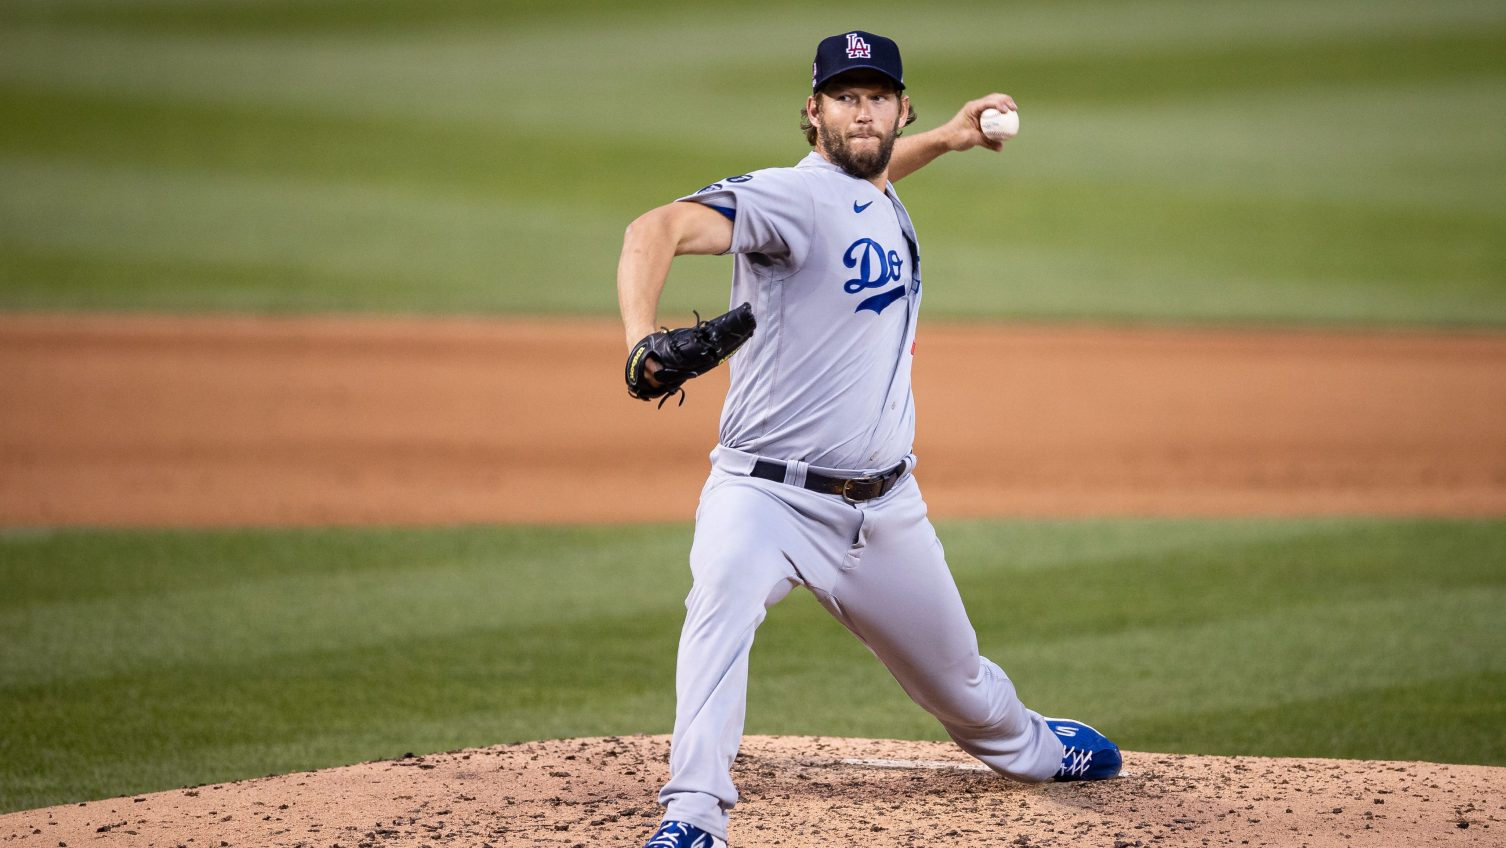 Dodgers ace Kershaw gets clean MRI on sore left elbow